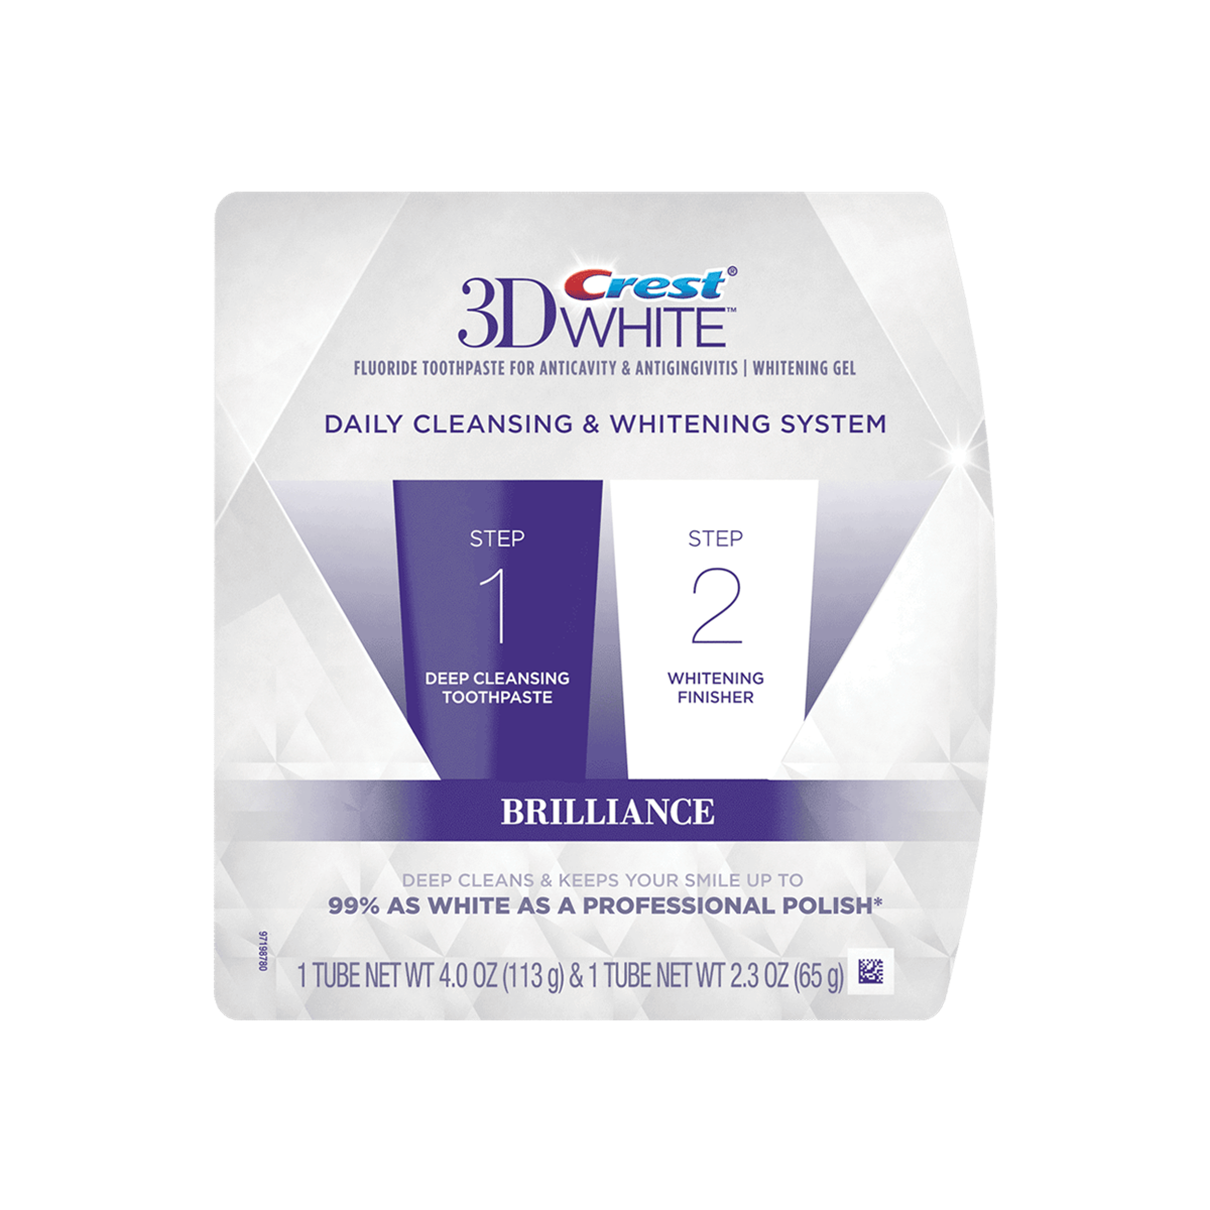 Crest 3D White Brilliance 2-Step System